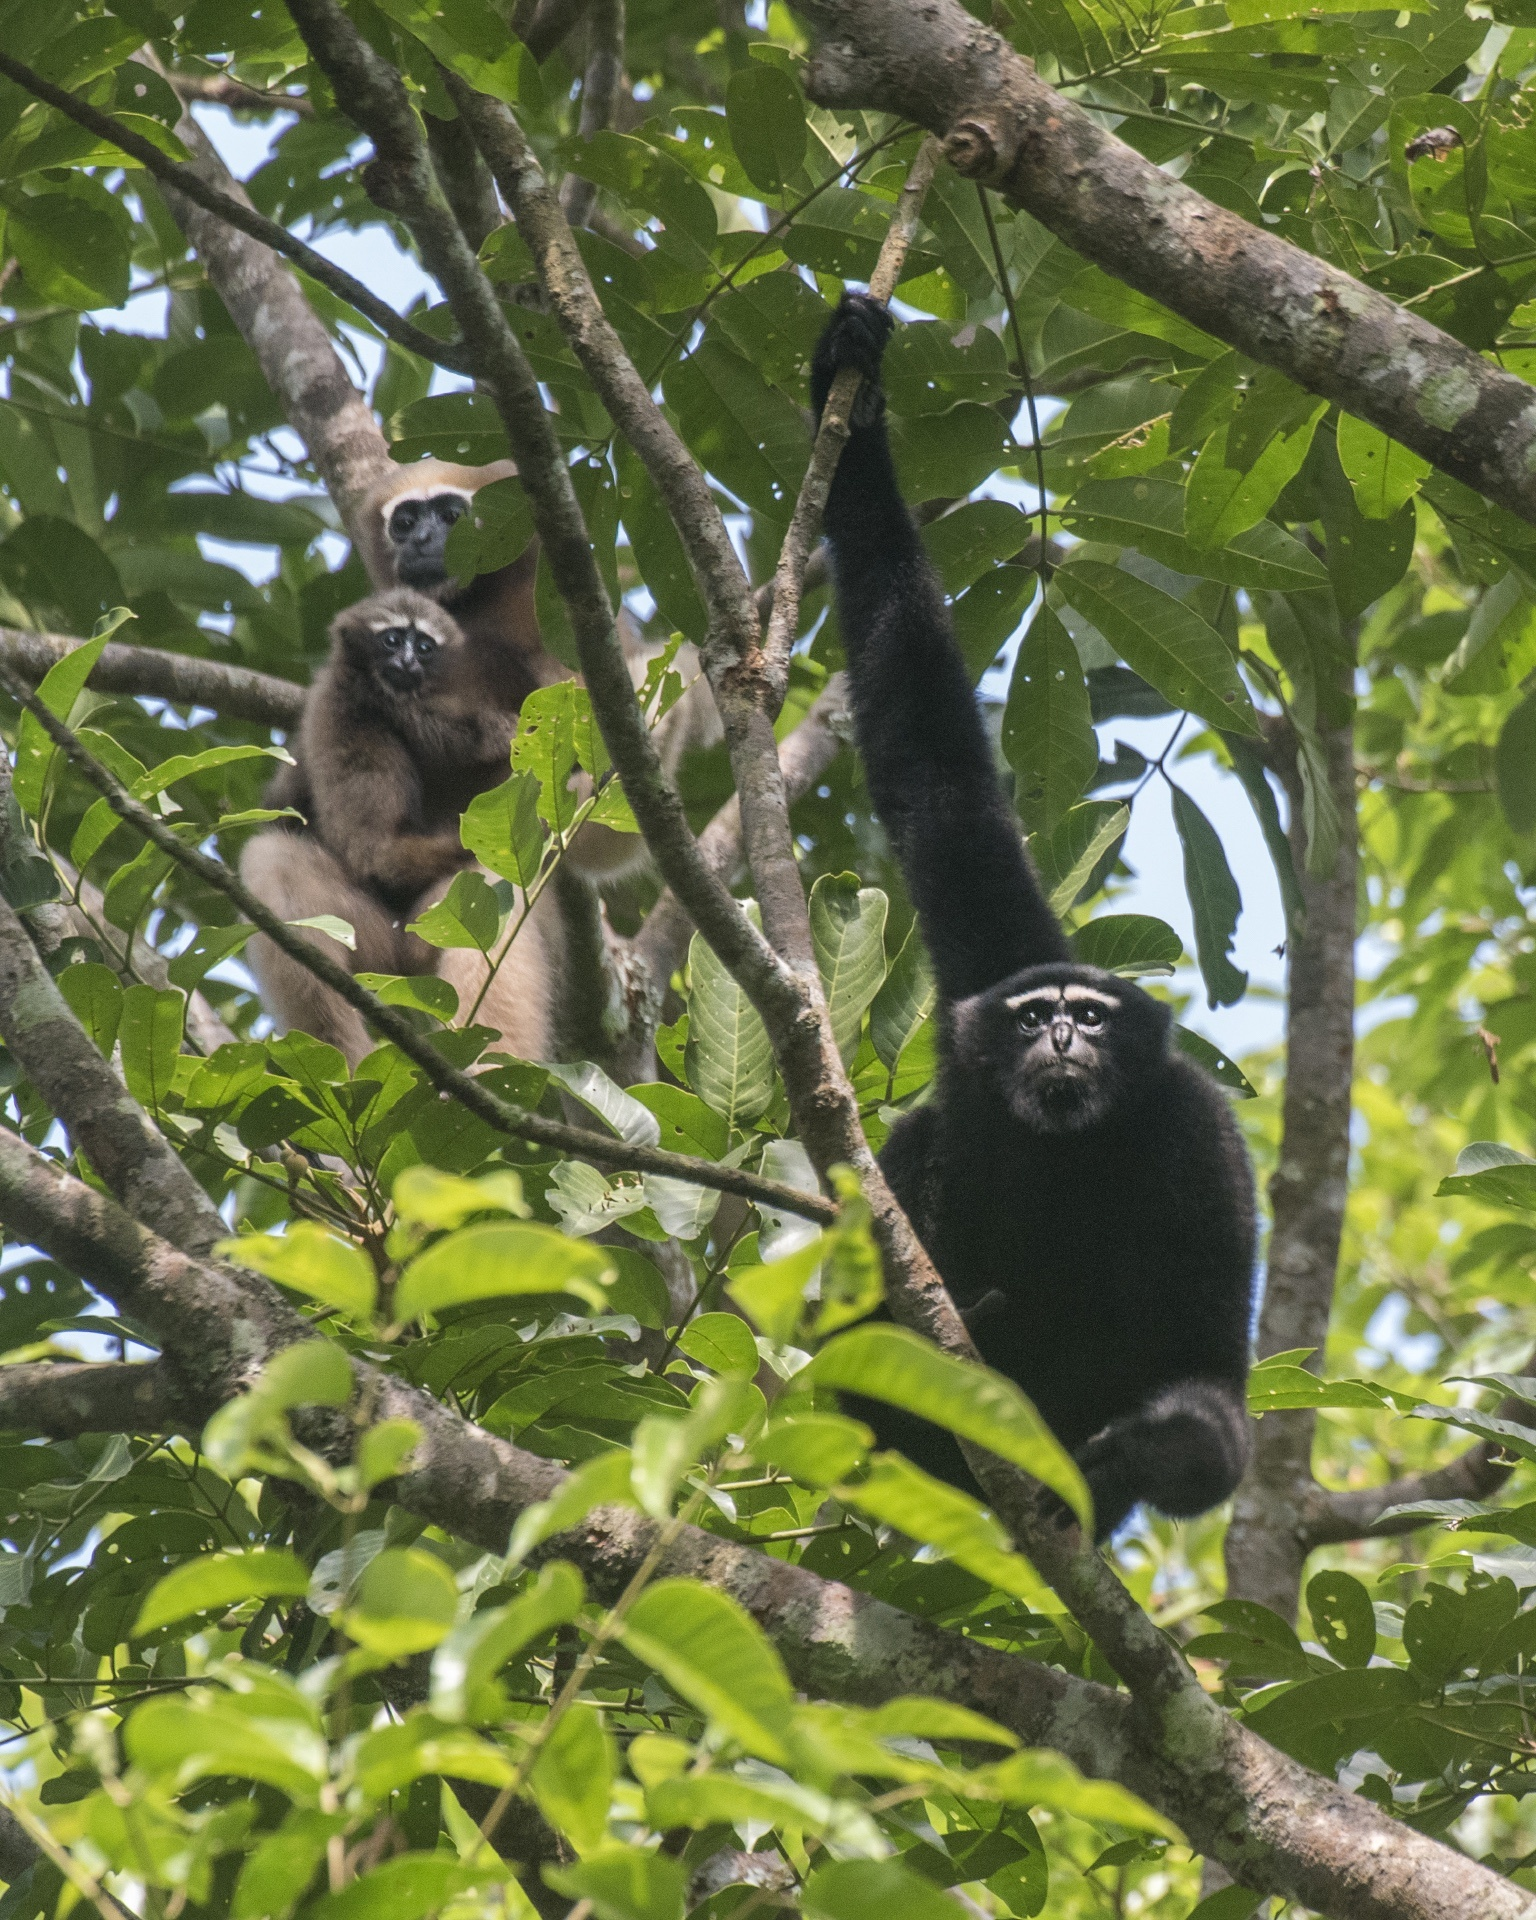 Of similar sizes, male and female hoolock gibbons can be differentiated by the colour of their dense hair — black for the male and copper-tan for the female. A male and female will form a monogamous pair that stays together for several years. Photo: Udayan Borthakur